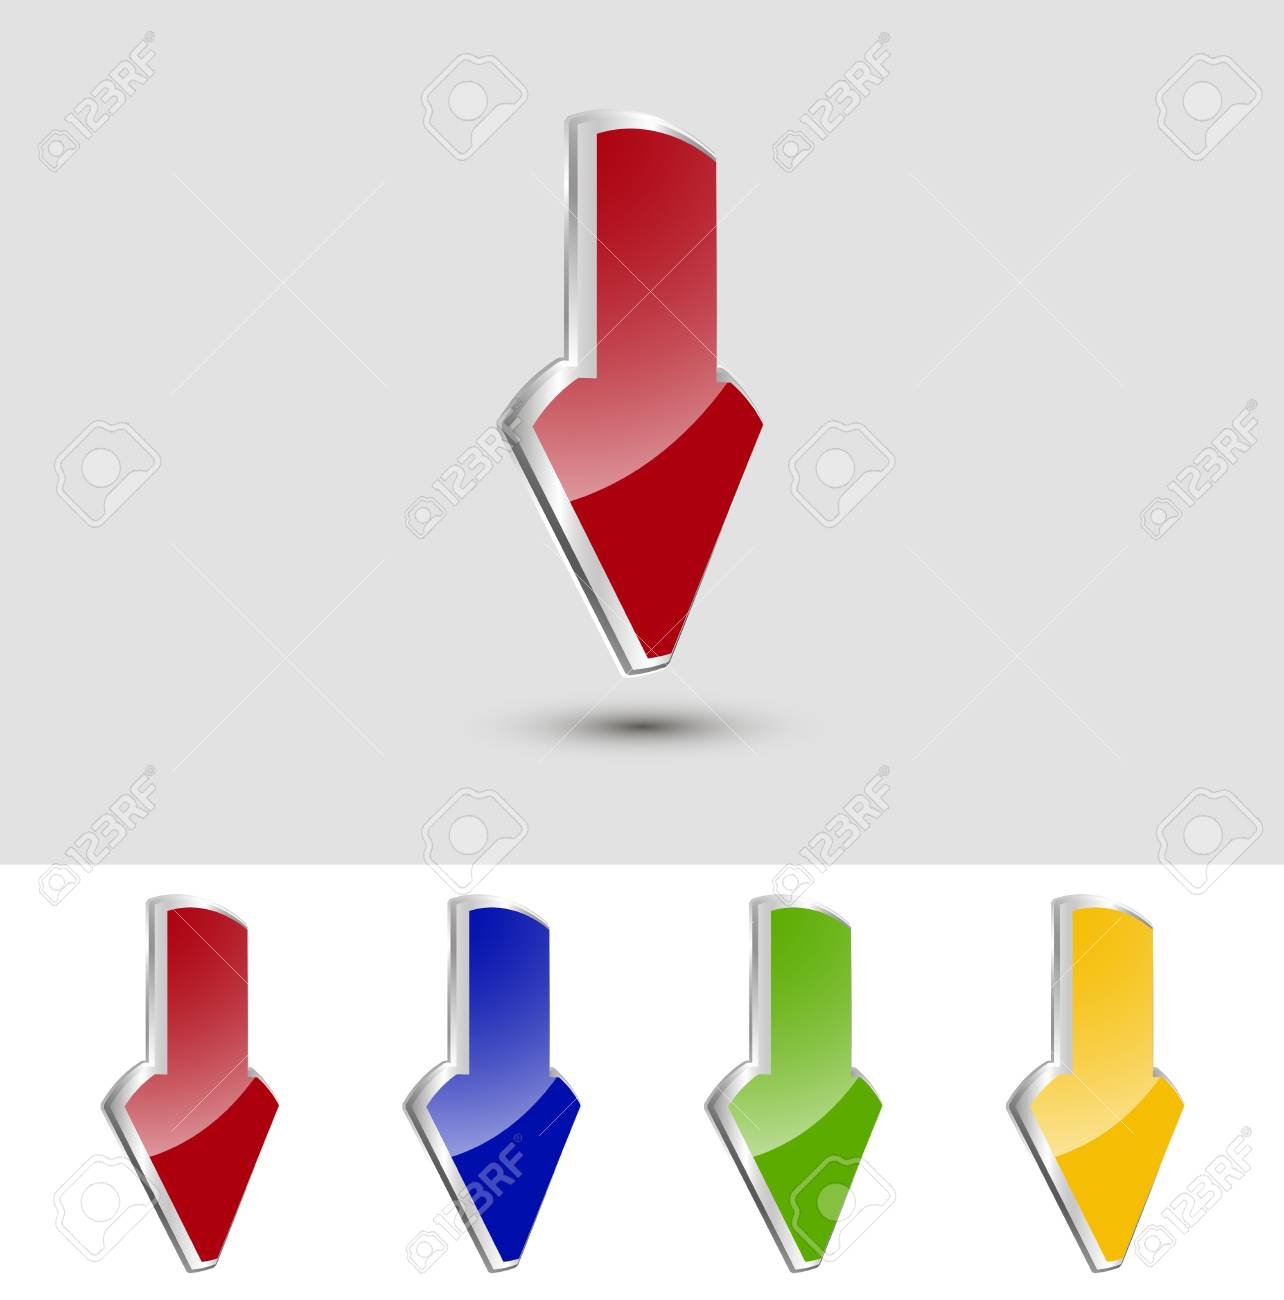 Vector metallic pointer, can to edit and change. Stock Vector - 12084447